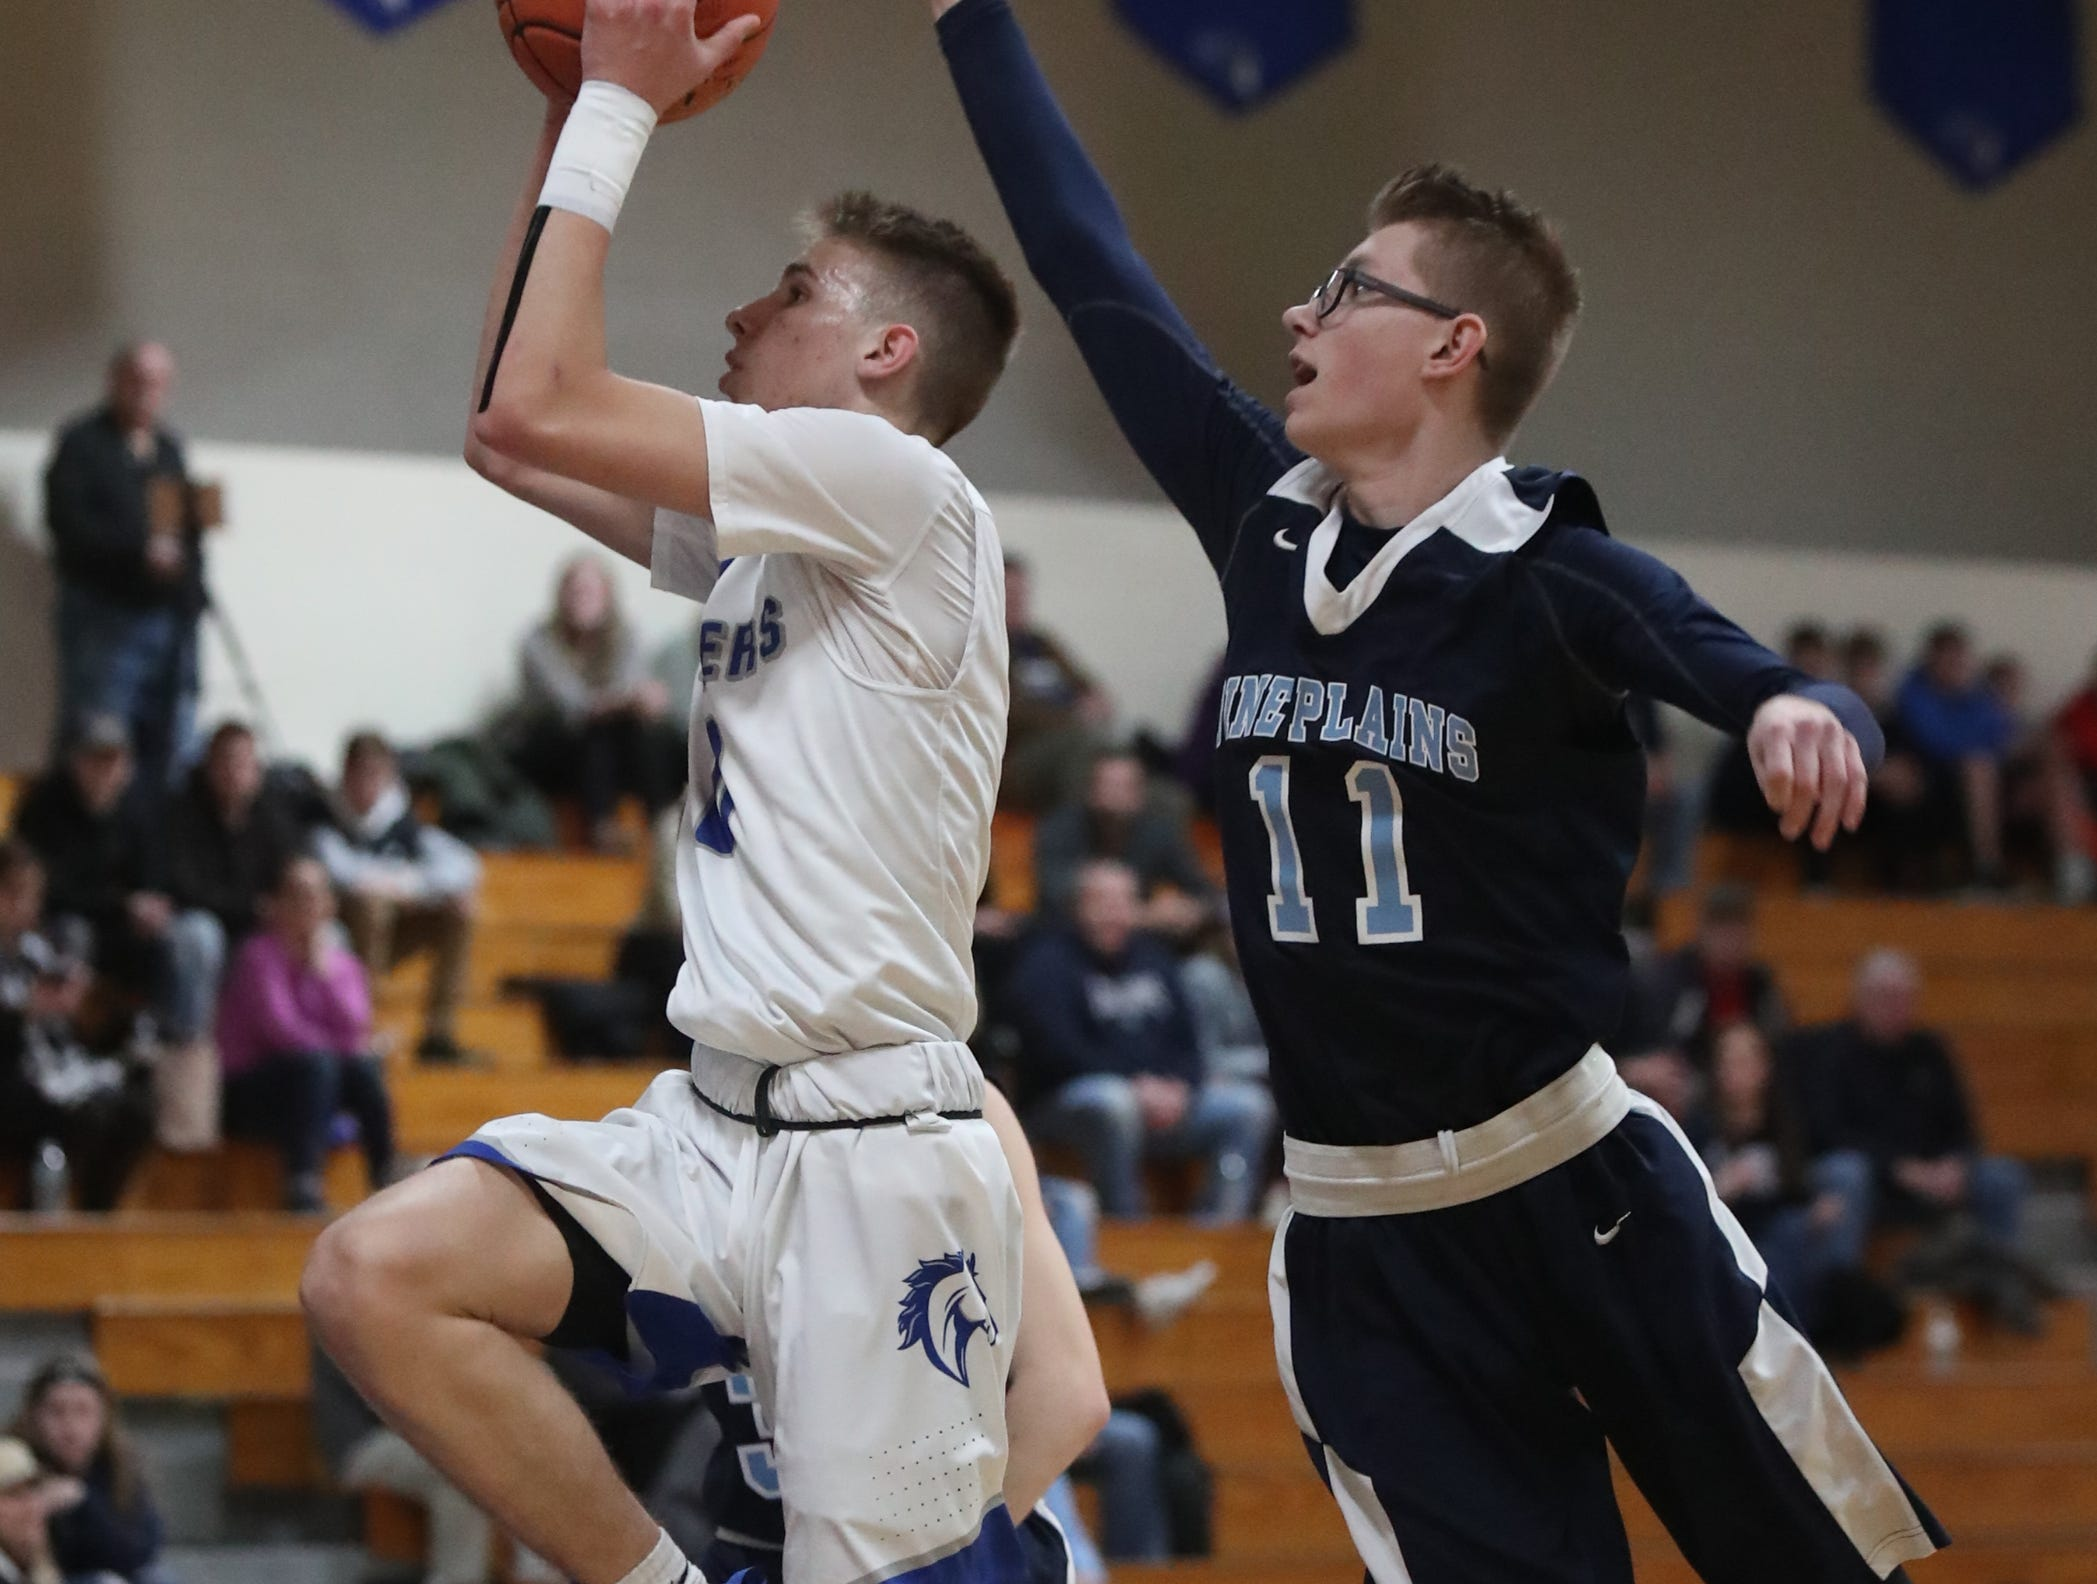 Millbrook's Jake Daly (0) puts up a shot past Pine Plains' Kane Kozlowski (11) in the boys basketball Class C section final basketball game at Mount St. Mary College in Newburgh on Thursday, February 28, 2019.